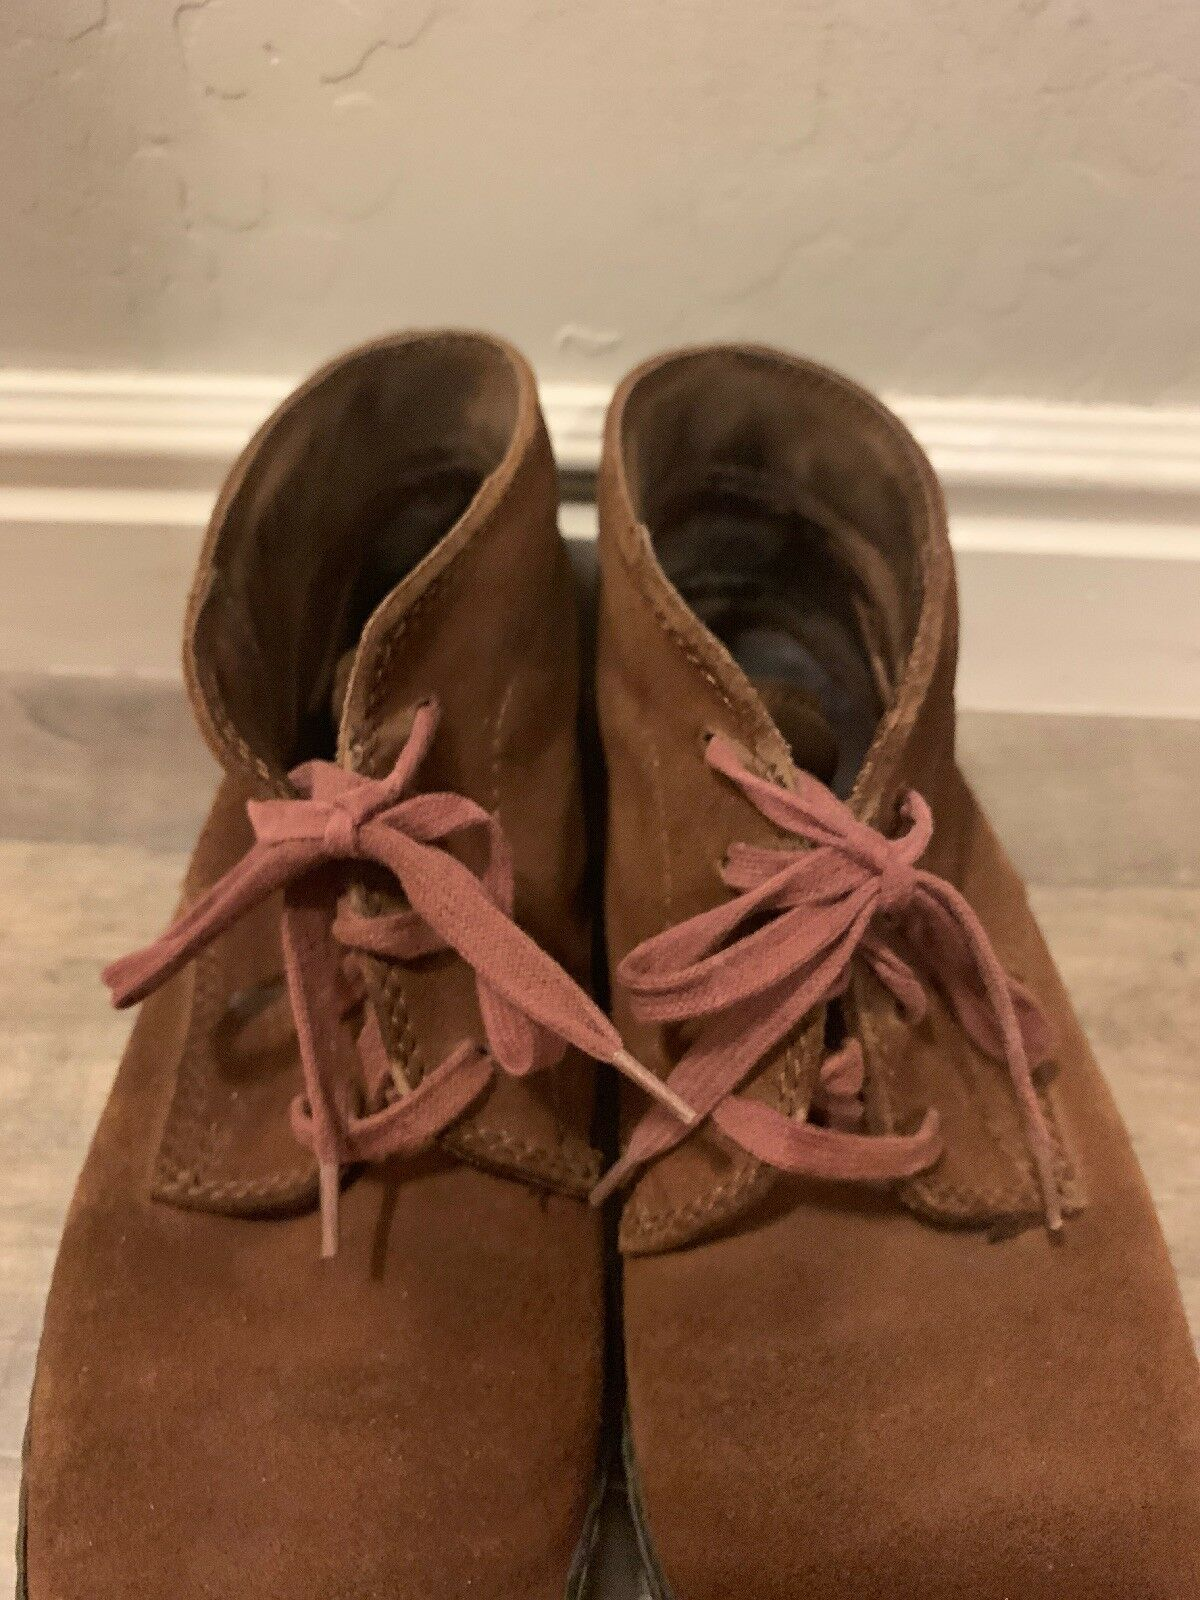 TODS Brown Suede Leather Lace Up Ankle Boots shoes shoes shoes Women's Size 37- U.S. 6-6.5 df896f